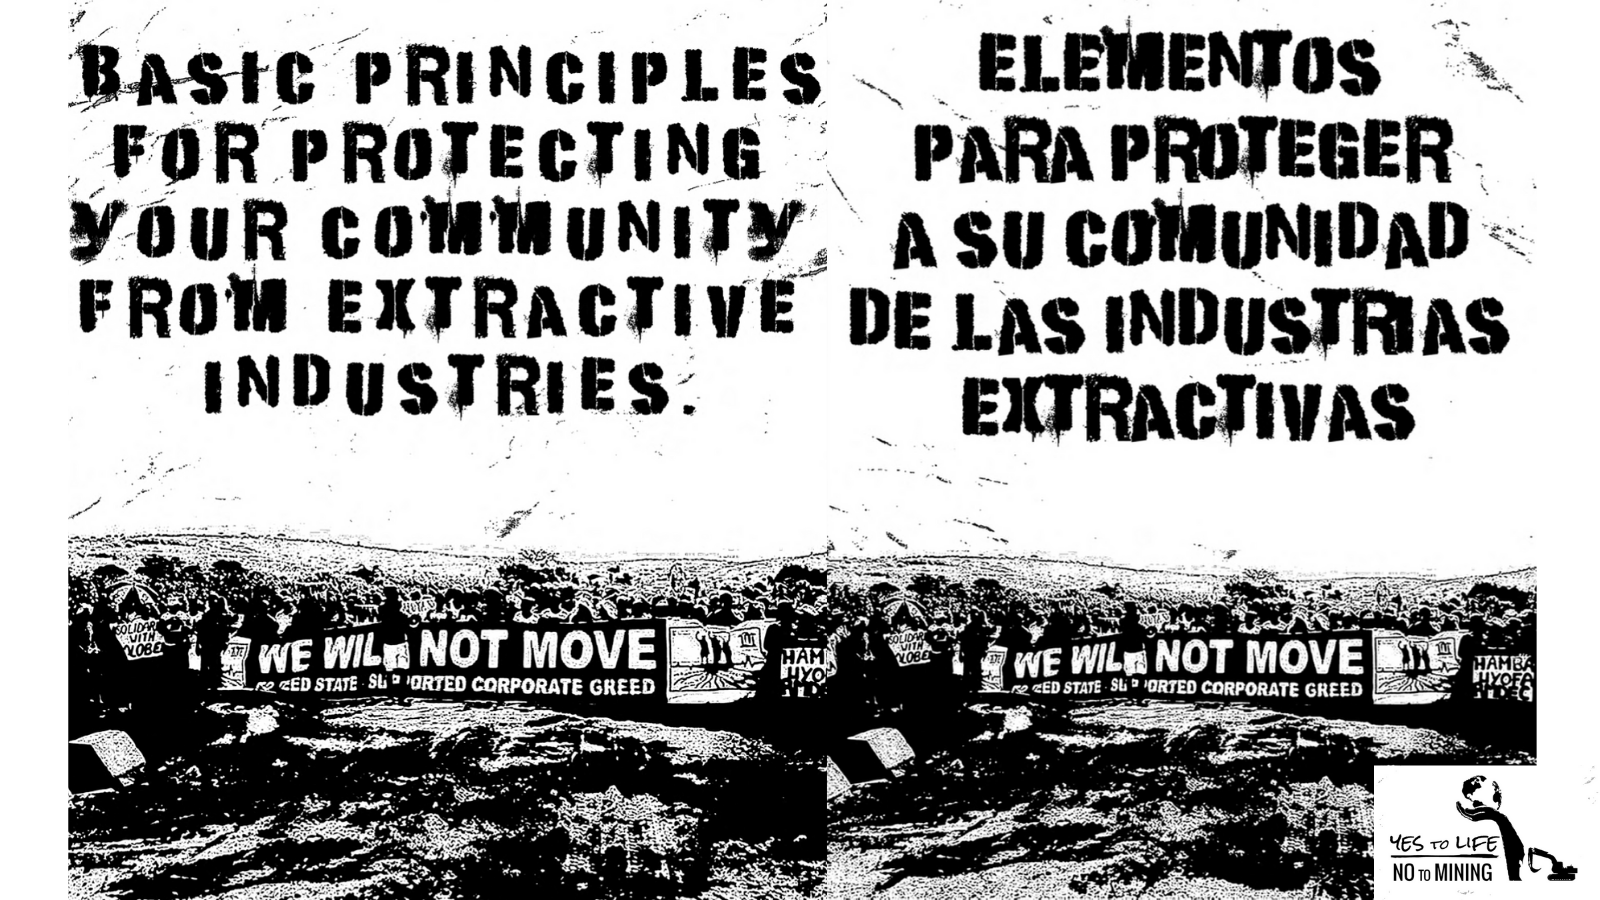 Guide to resisting mining – new edition released on the Global Day Against Mega Mining